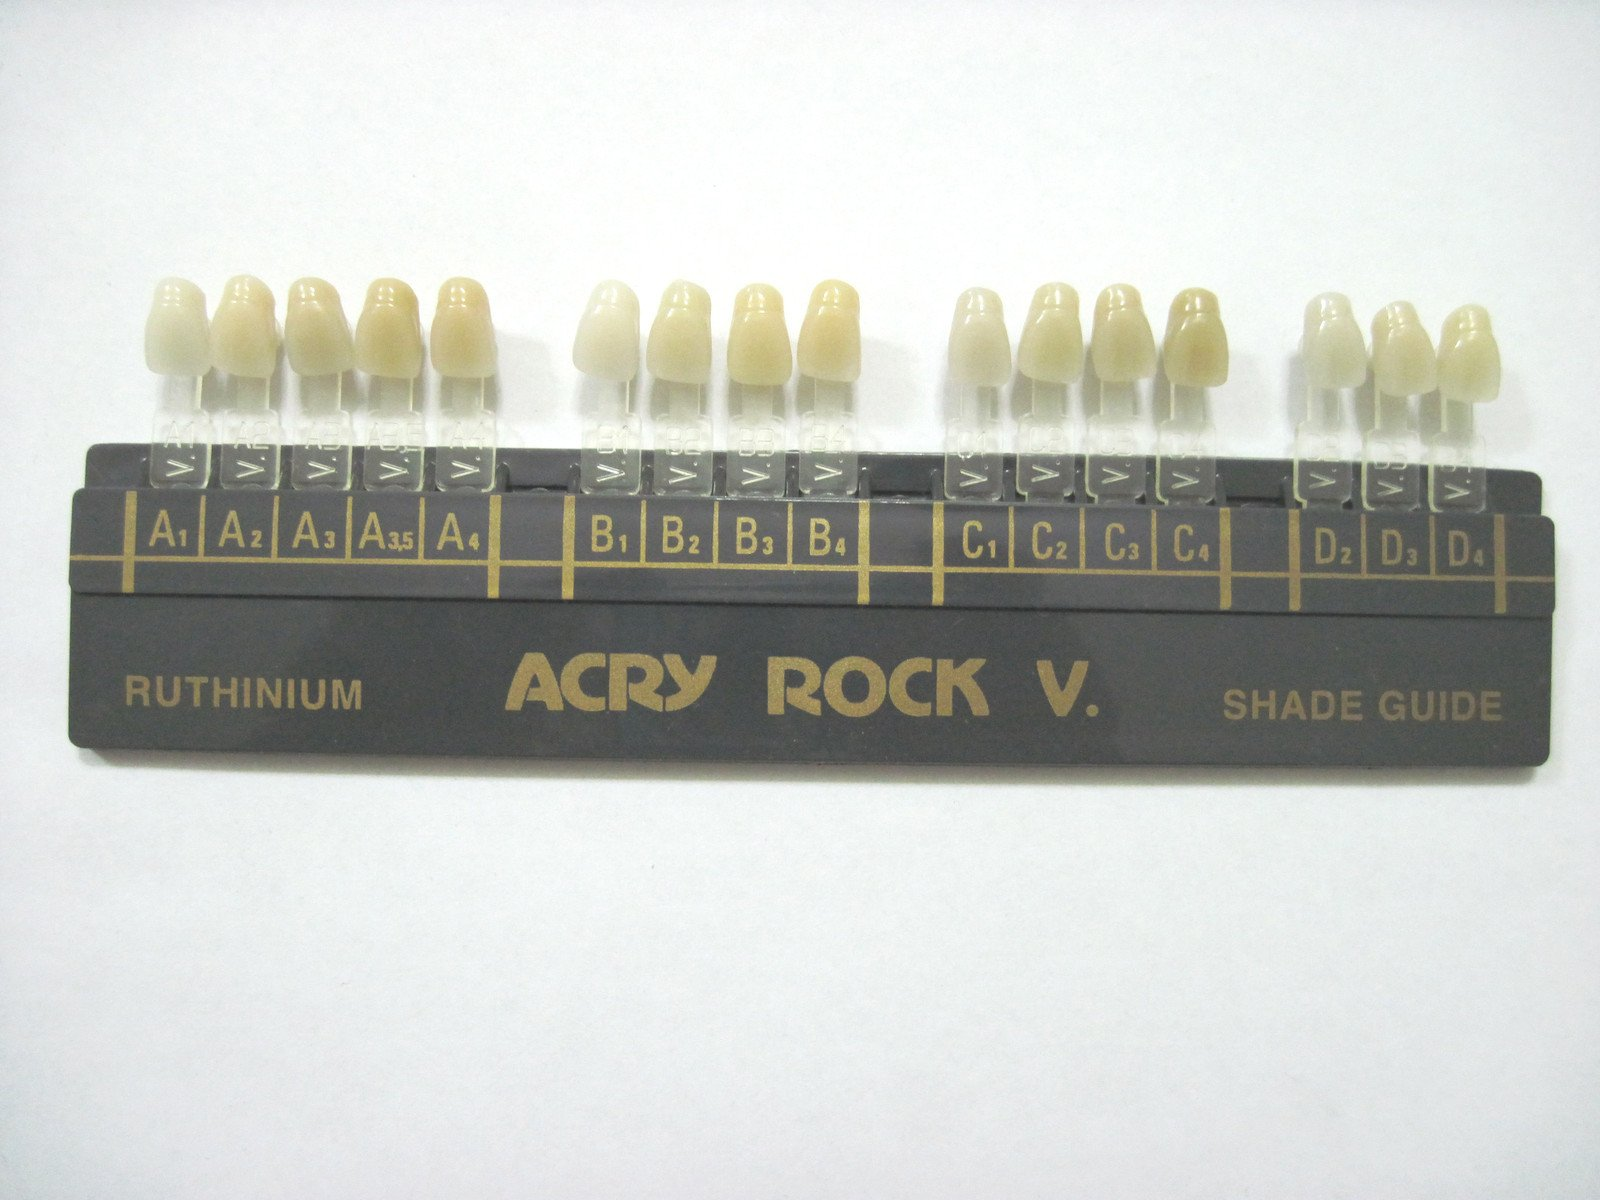 Acry Rock Dental Shade Guide for Whitening and